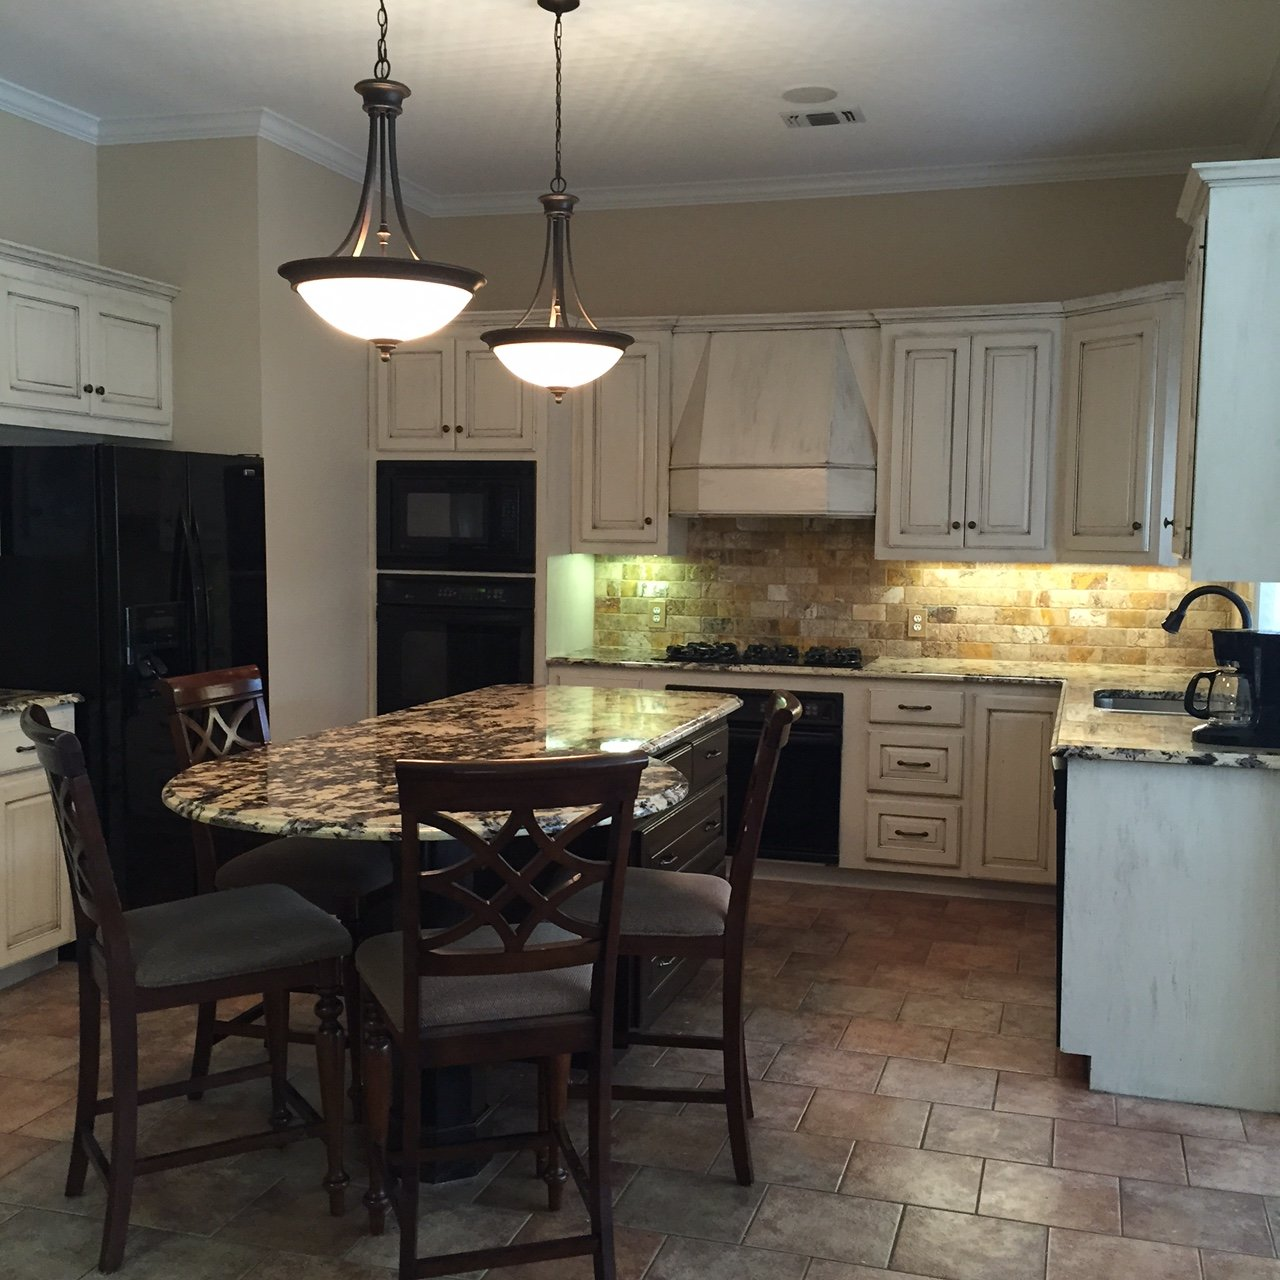 Types of kitchen lighting Task Kinds Of Lights To Consider For Your Kitchen Remodel Nearsay Popular Types Of Kitchen Lights Janet Green Interior Design